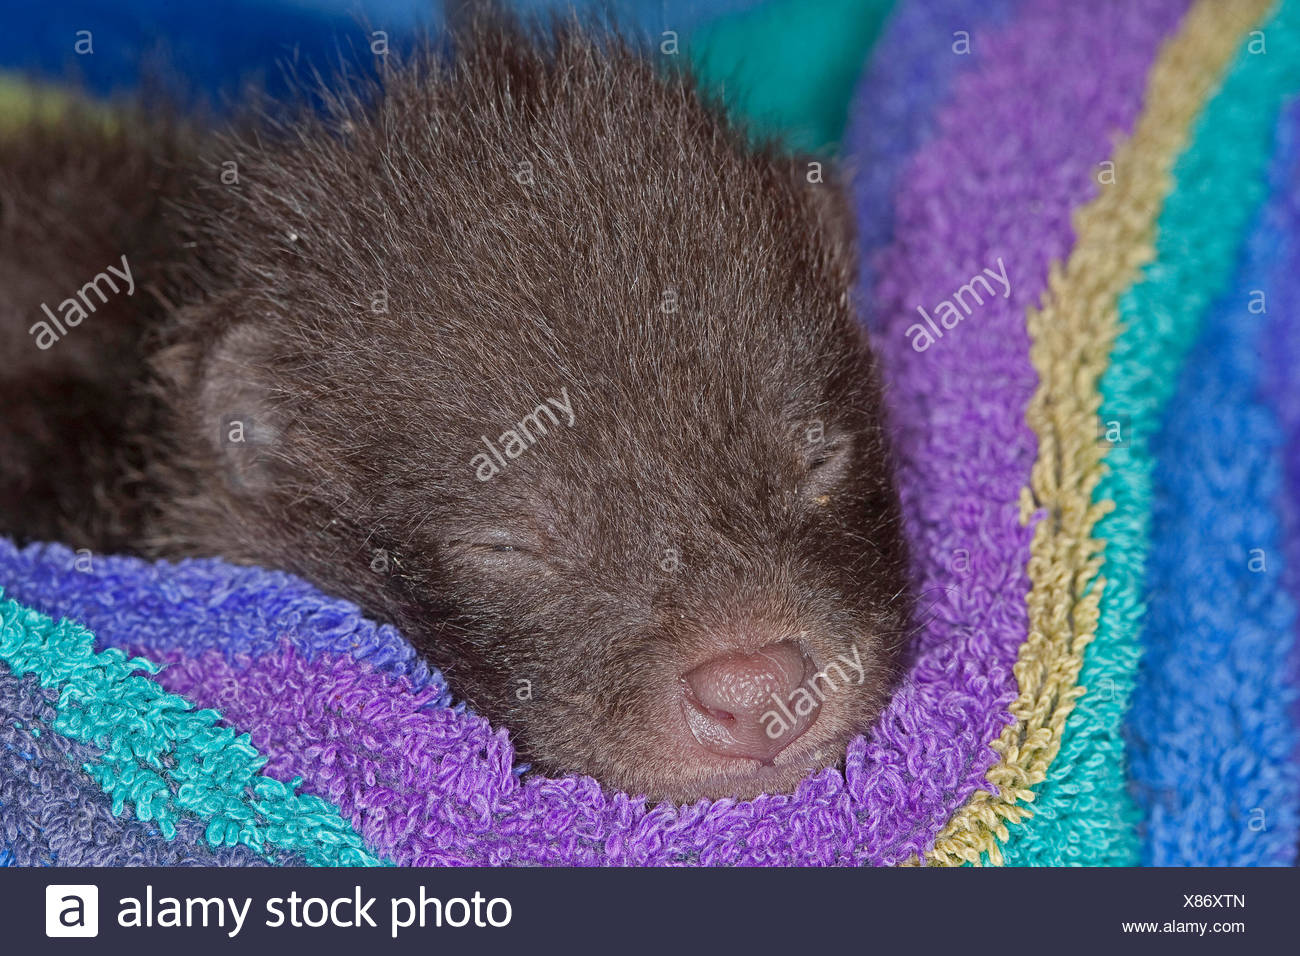 raccoon dog (Nyctereutes procyonoides), orphaned puppy sleeping in a towel, Germany - Stock Image